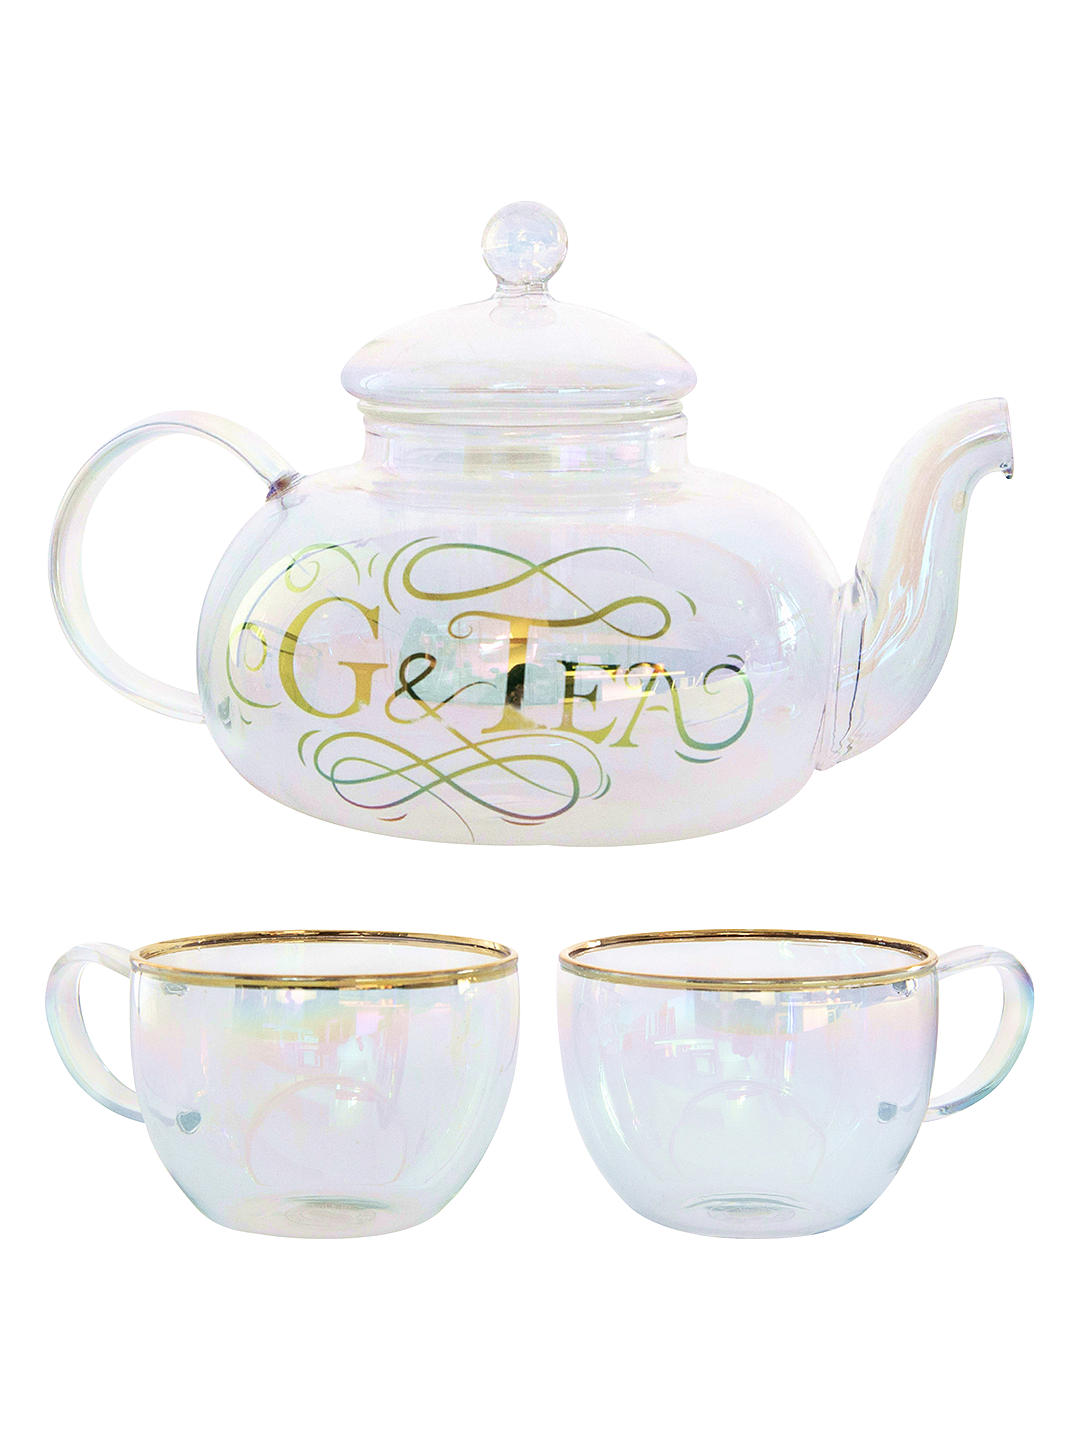 The Root 7 G & Tea set